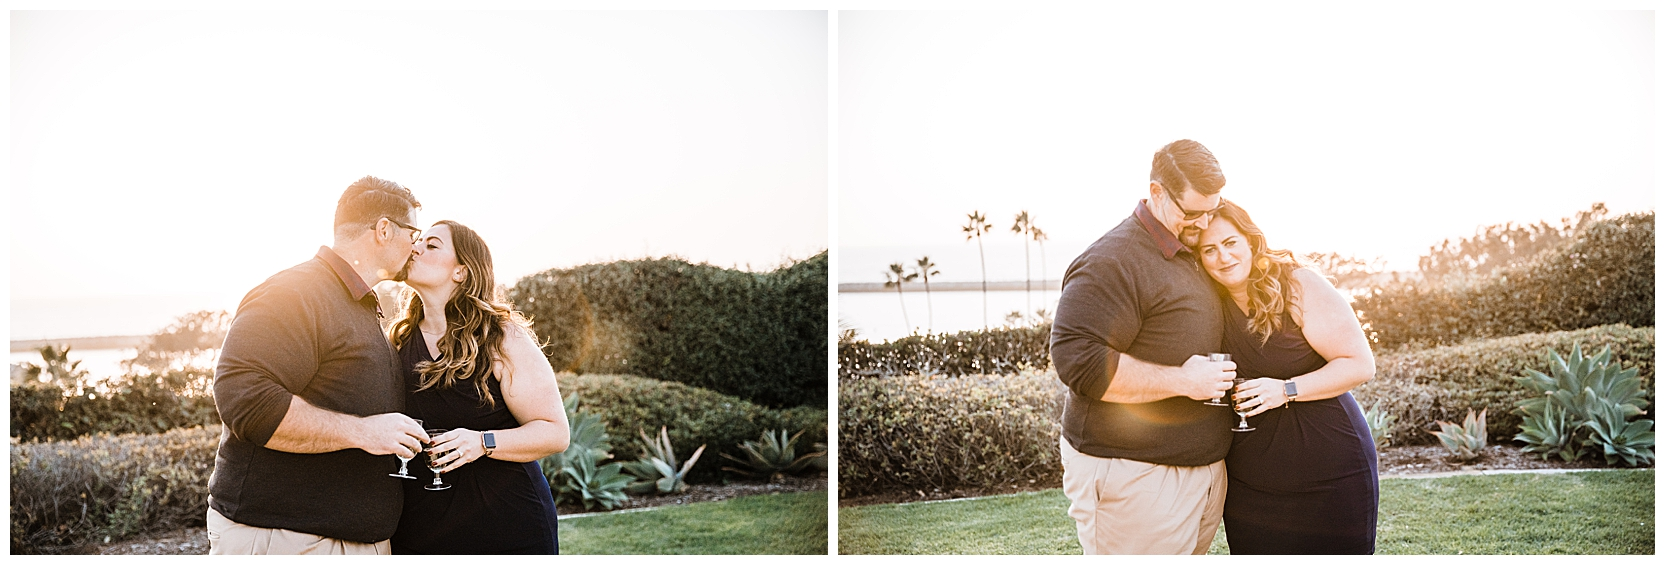 jessicafredericks_huntingtonbeach_proposal_sunset_engagement_0018.jpg